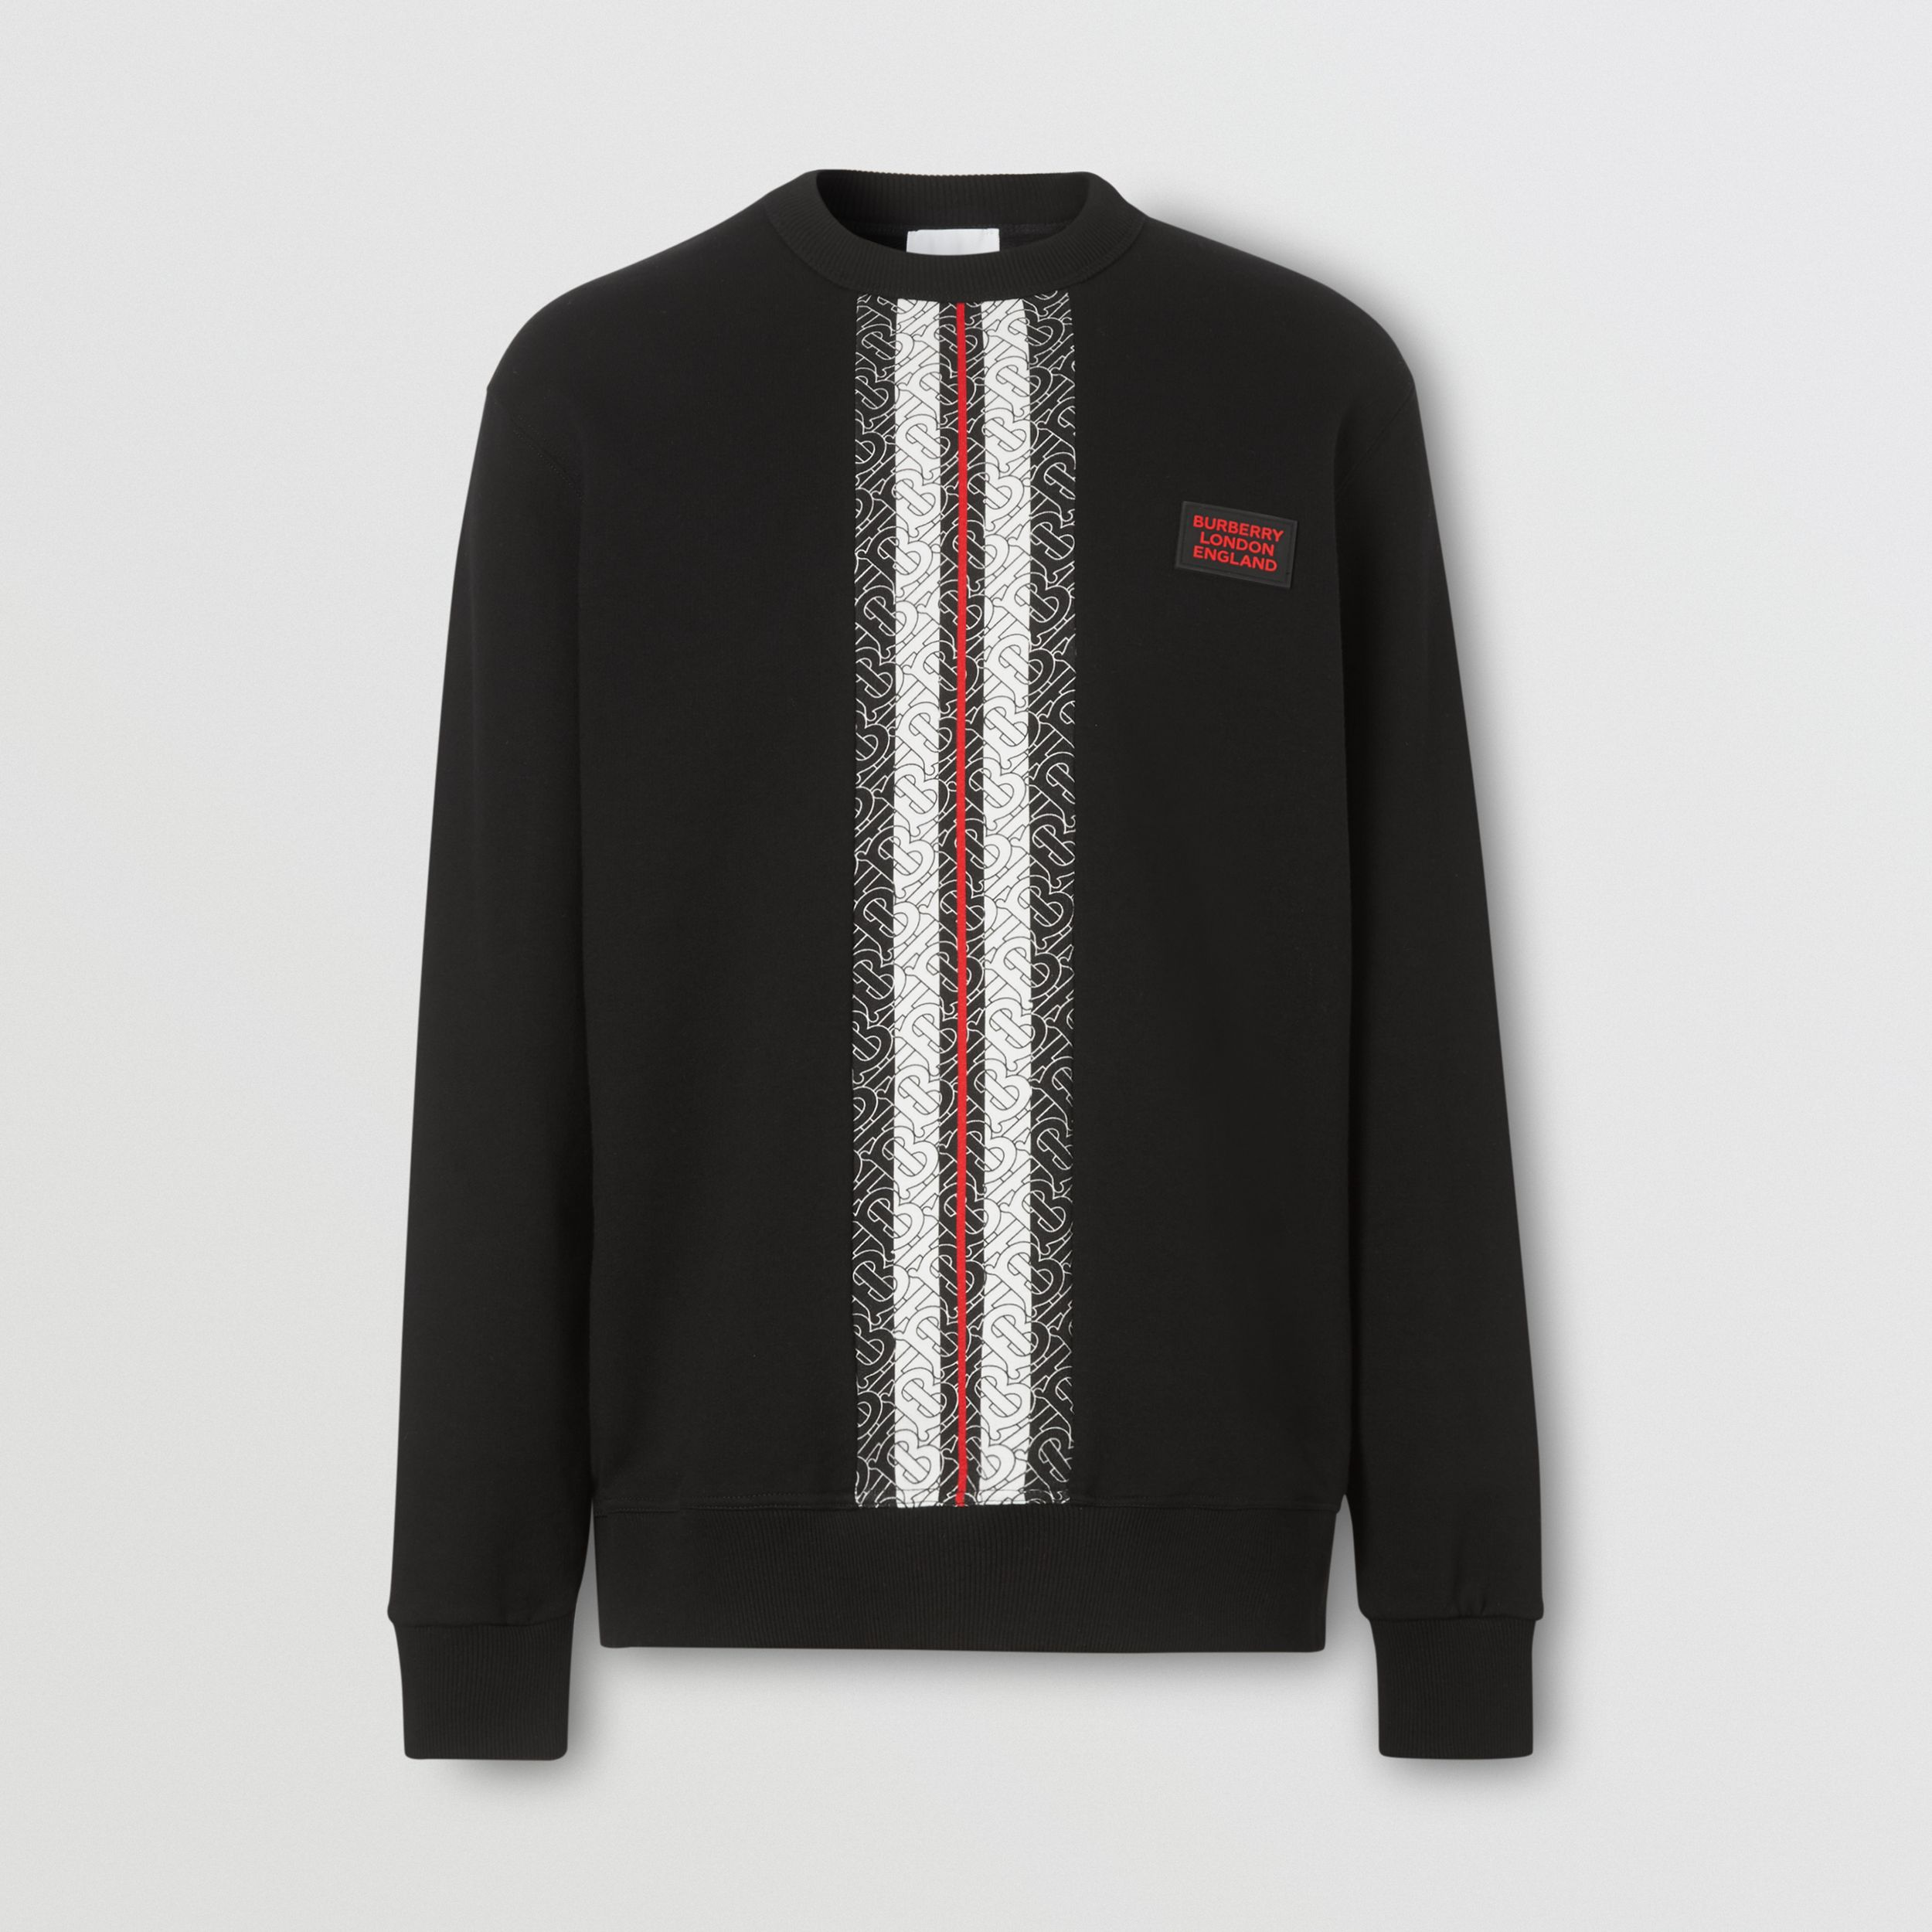 Monogram Stripe Print Cotton Sweatshirt in Black - Men | Burberry - 4